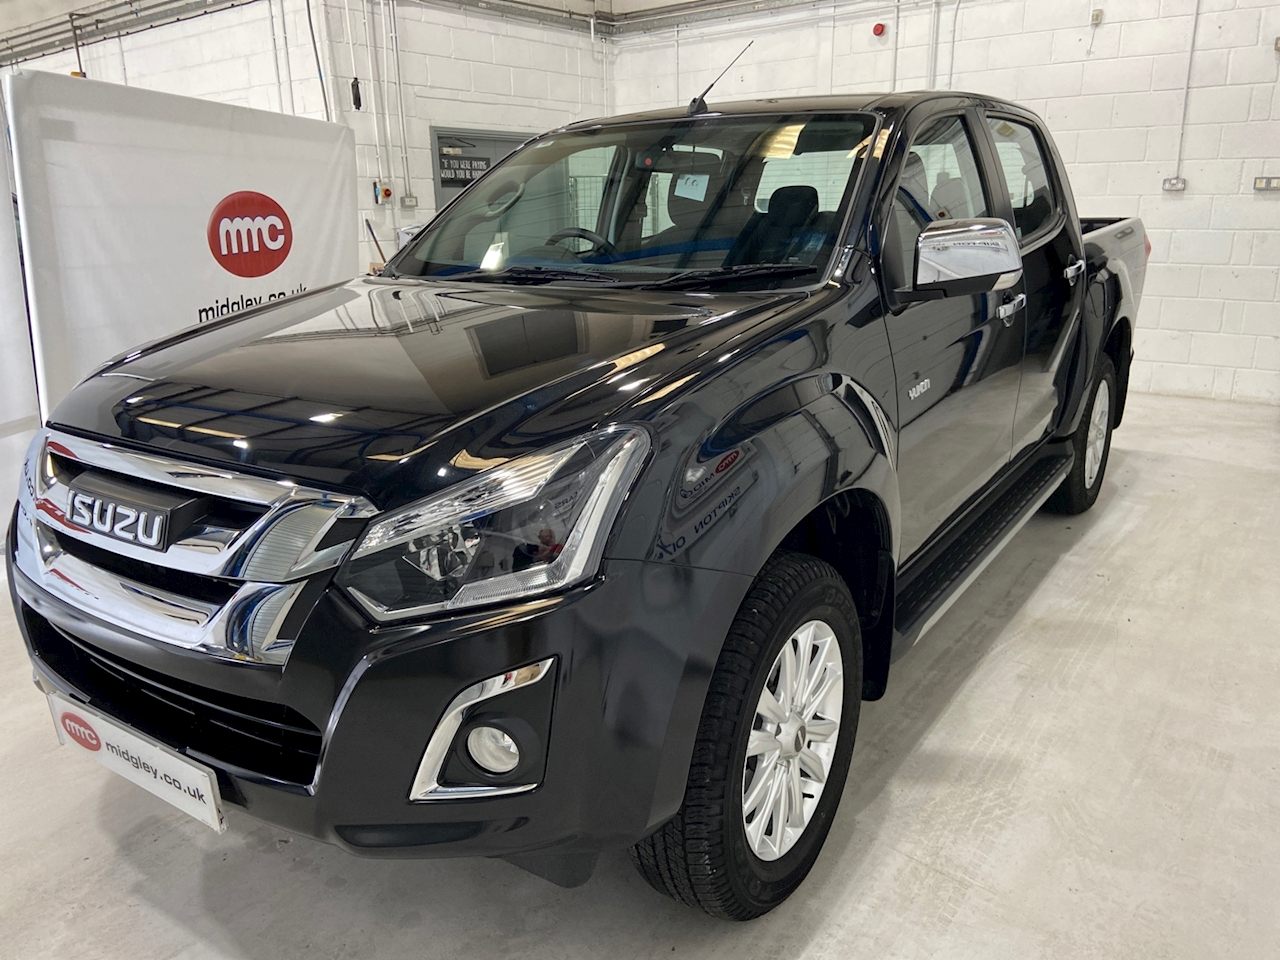 Isuzu D-Max Yukon Dcb Pick Up 1.9 Manual Diesel